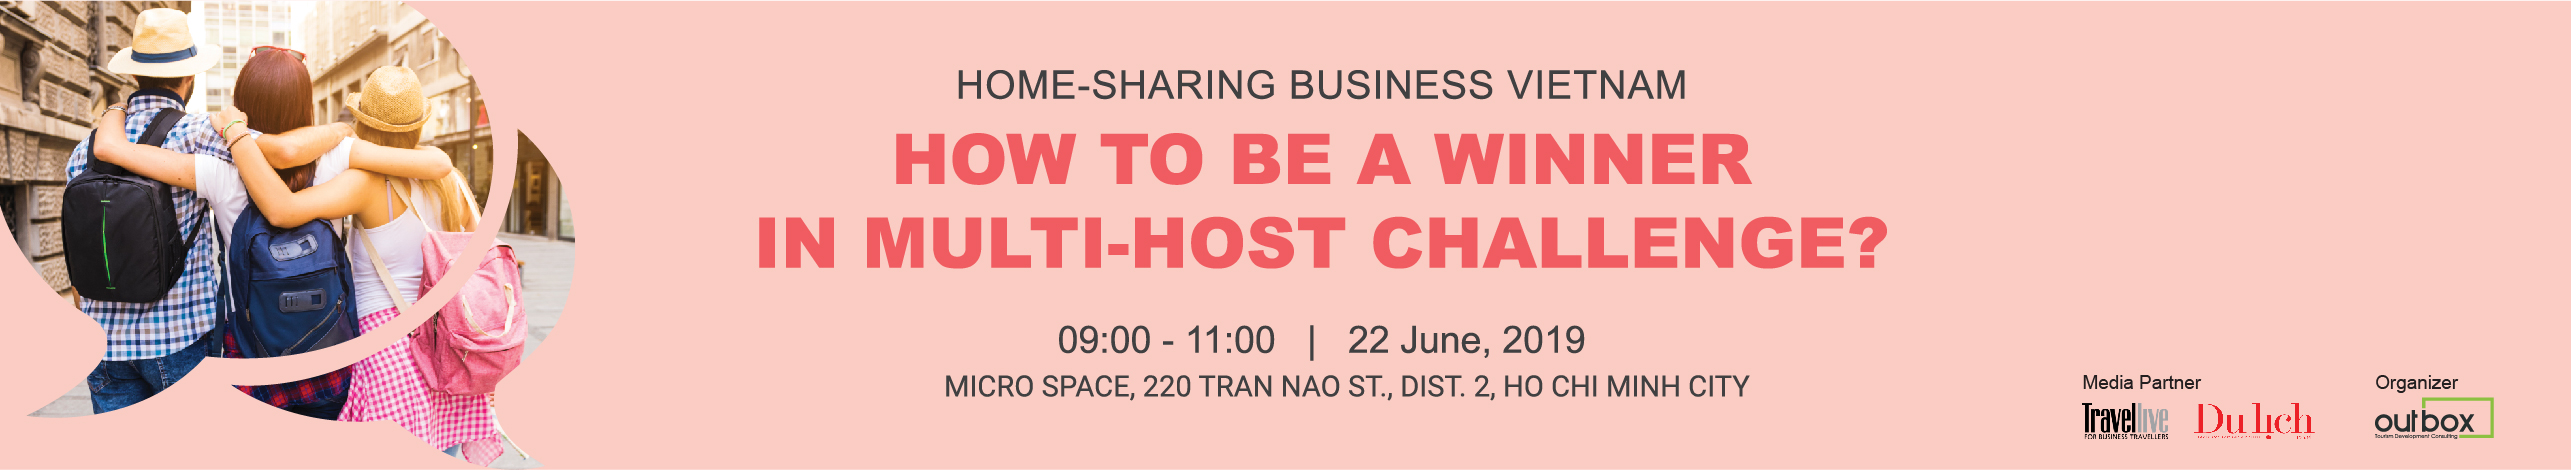 Home-sharing Workshop